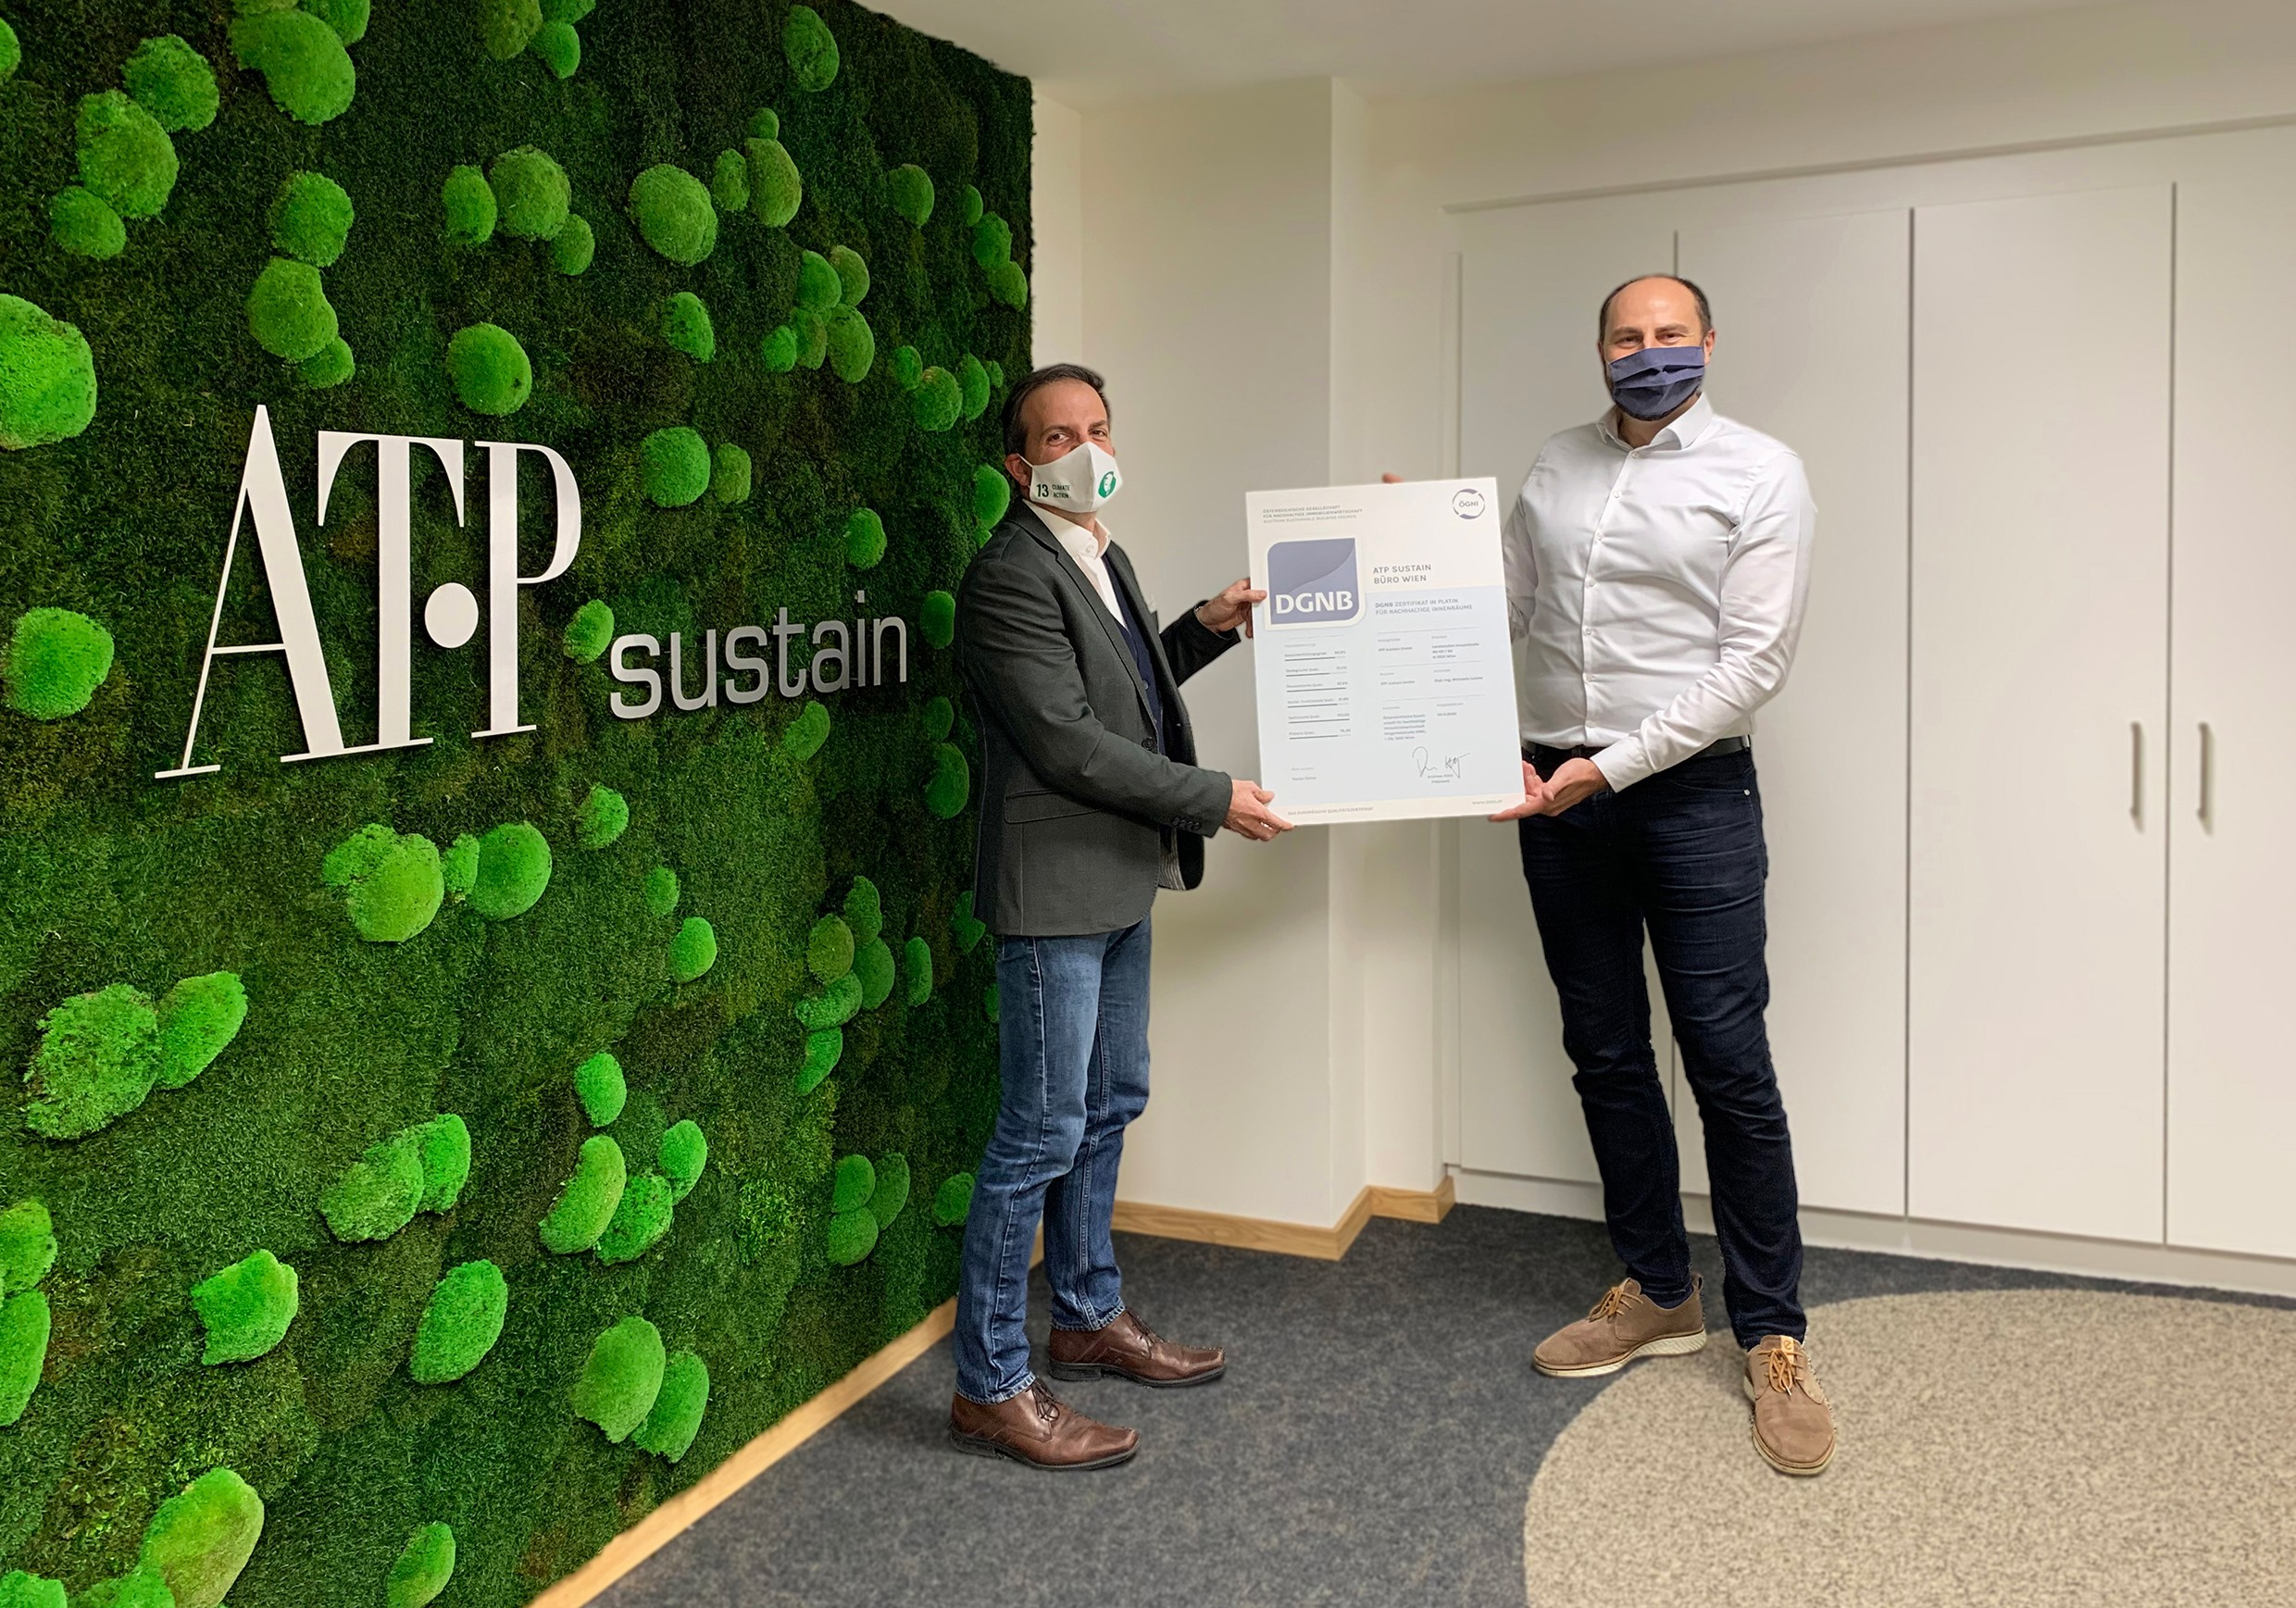 Michael Haugeneder, Managing Director, ATP sustain (left), and Tobias Hutter, Authorized Signatory, ATP sustain (right), are delighted by the certification.<br><span class='image_copyright'>ATP sustain</span><br>